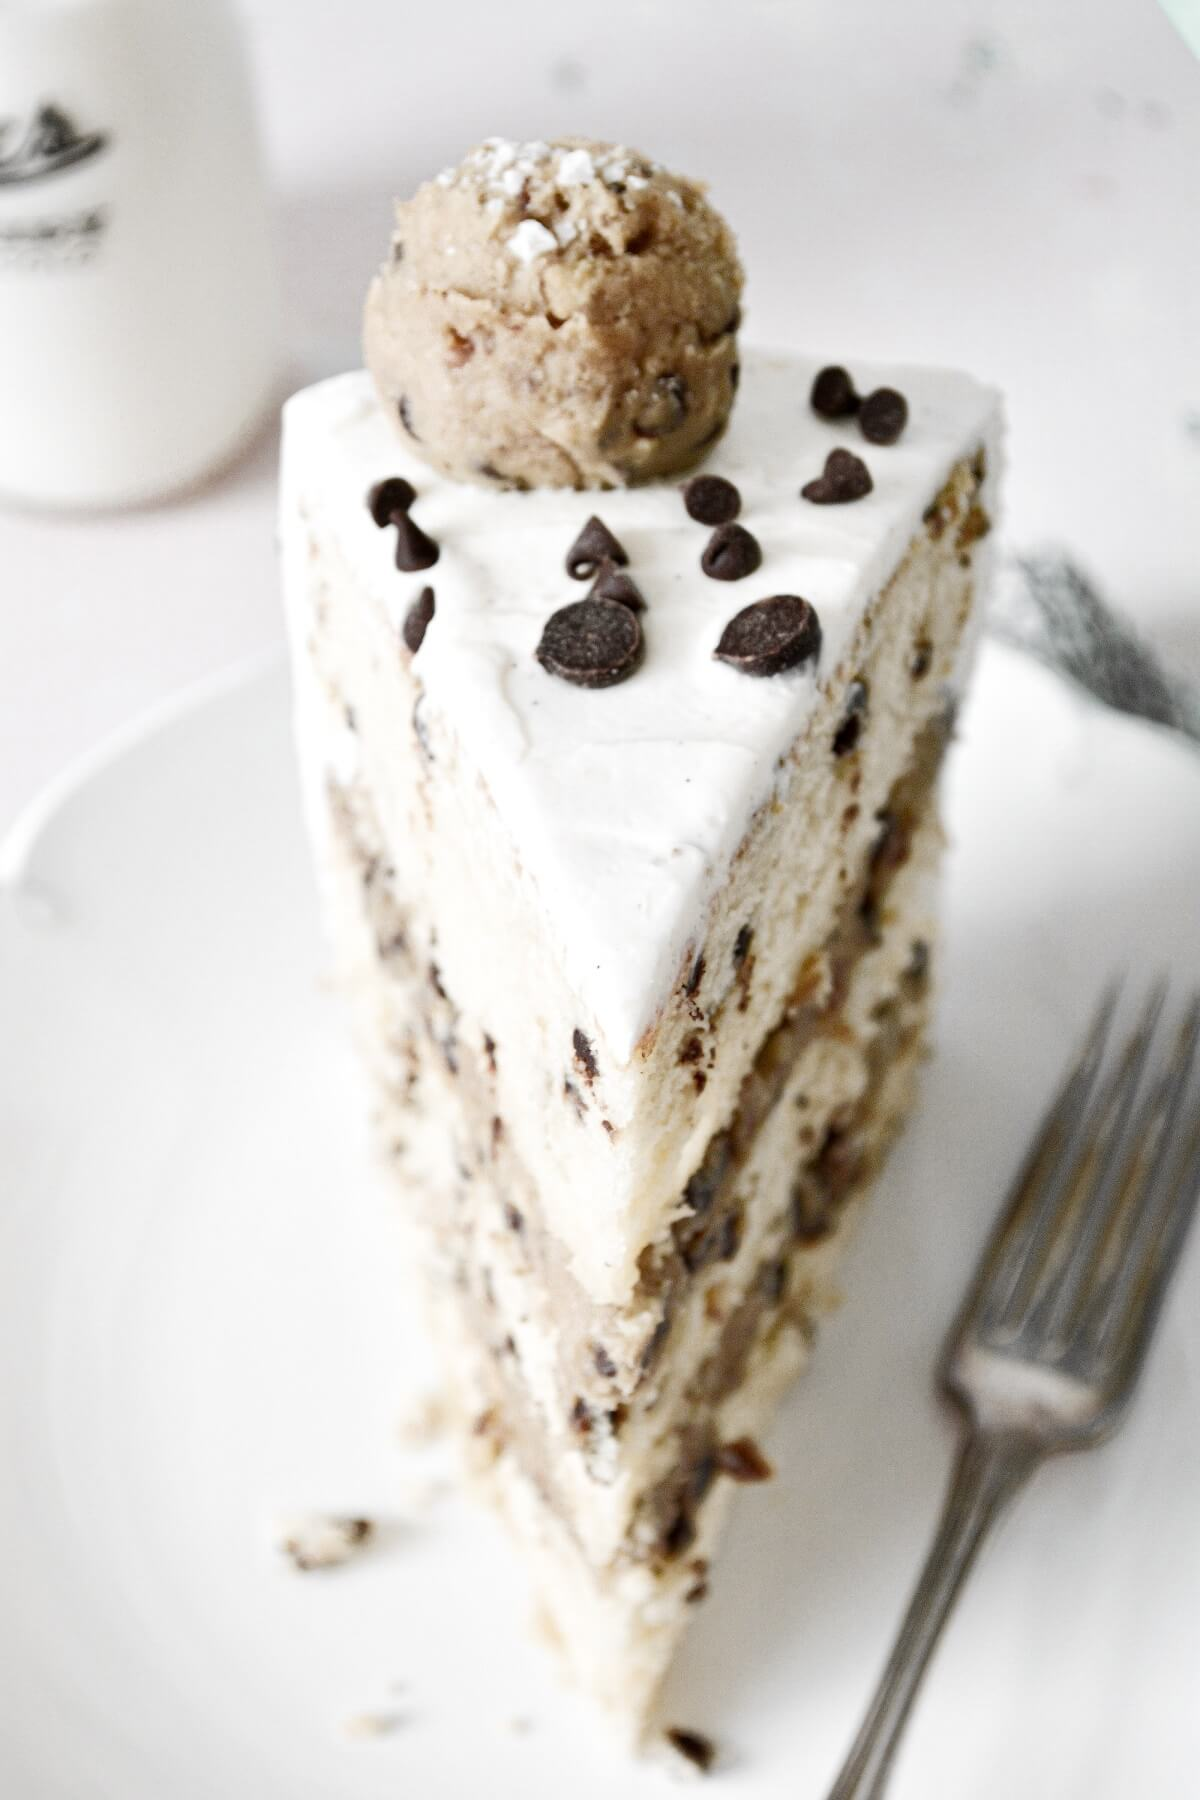 A slice of chocolate chip cookie dough cake, decorated with chocolate chips and balls of cookie dough.